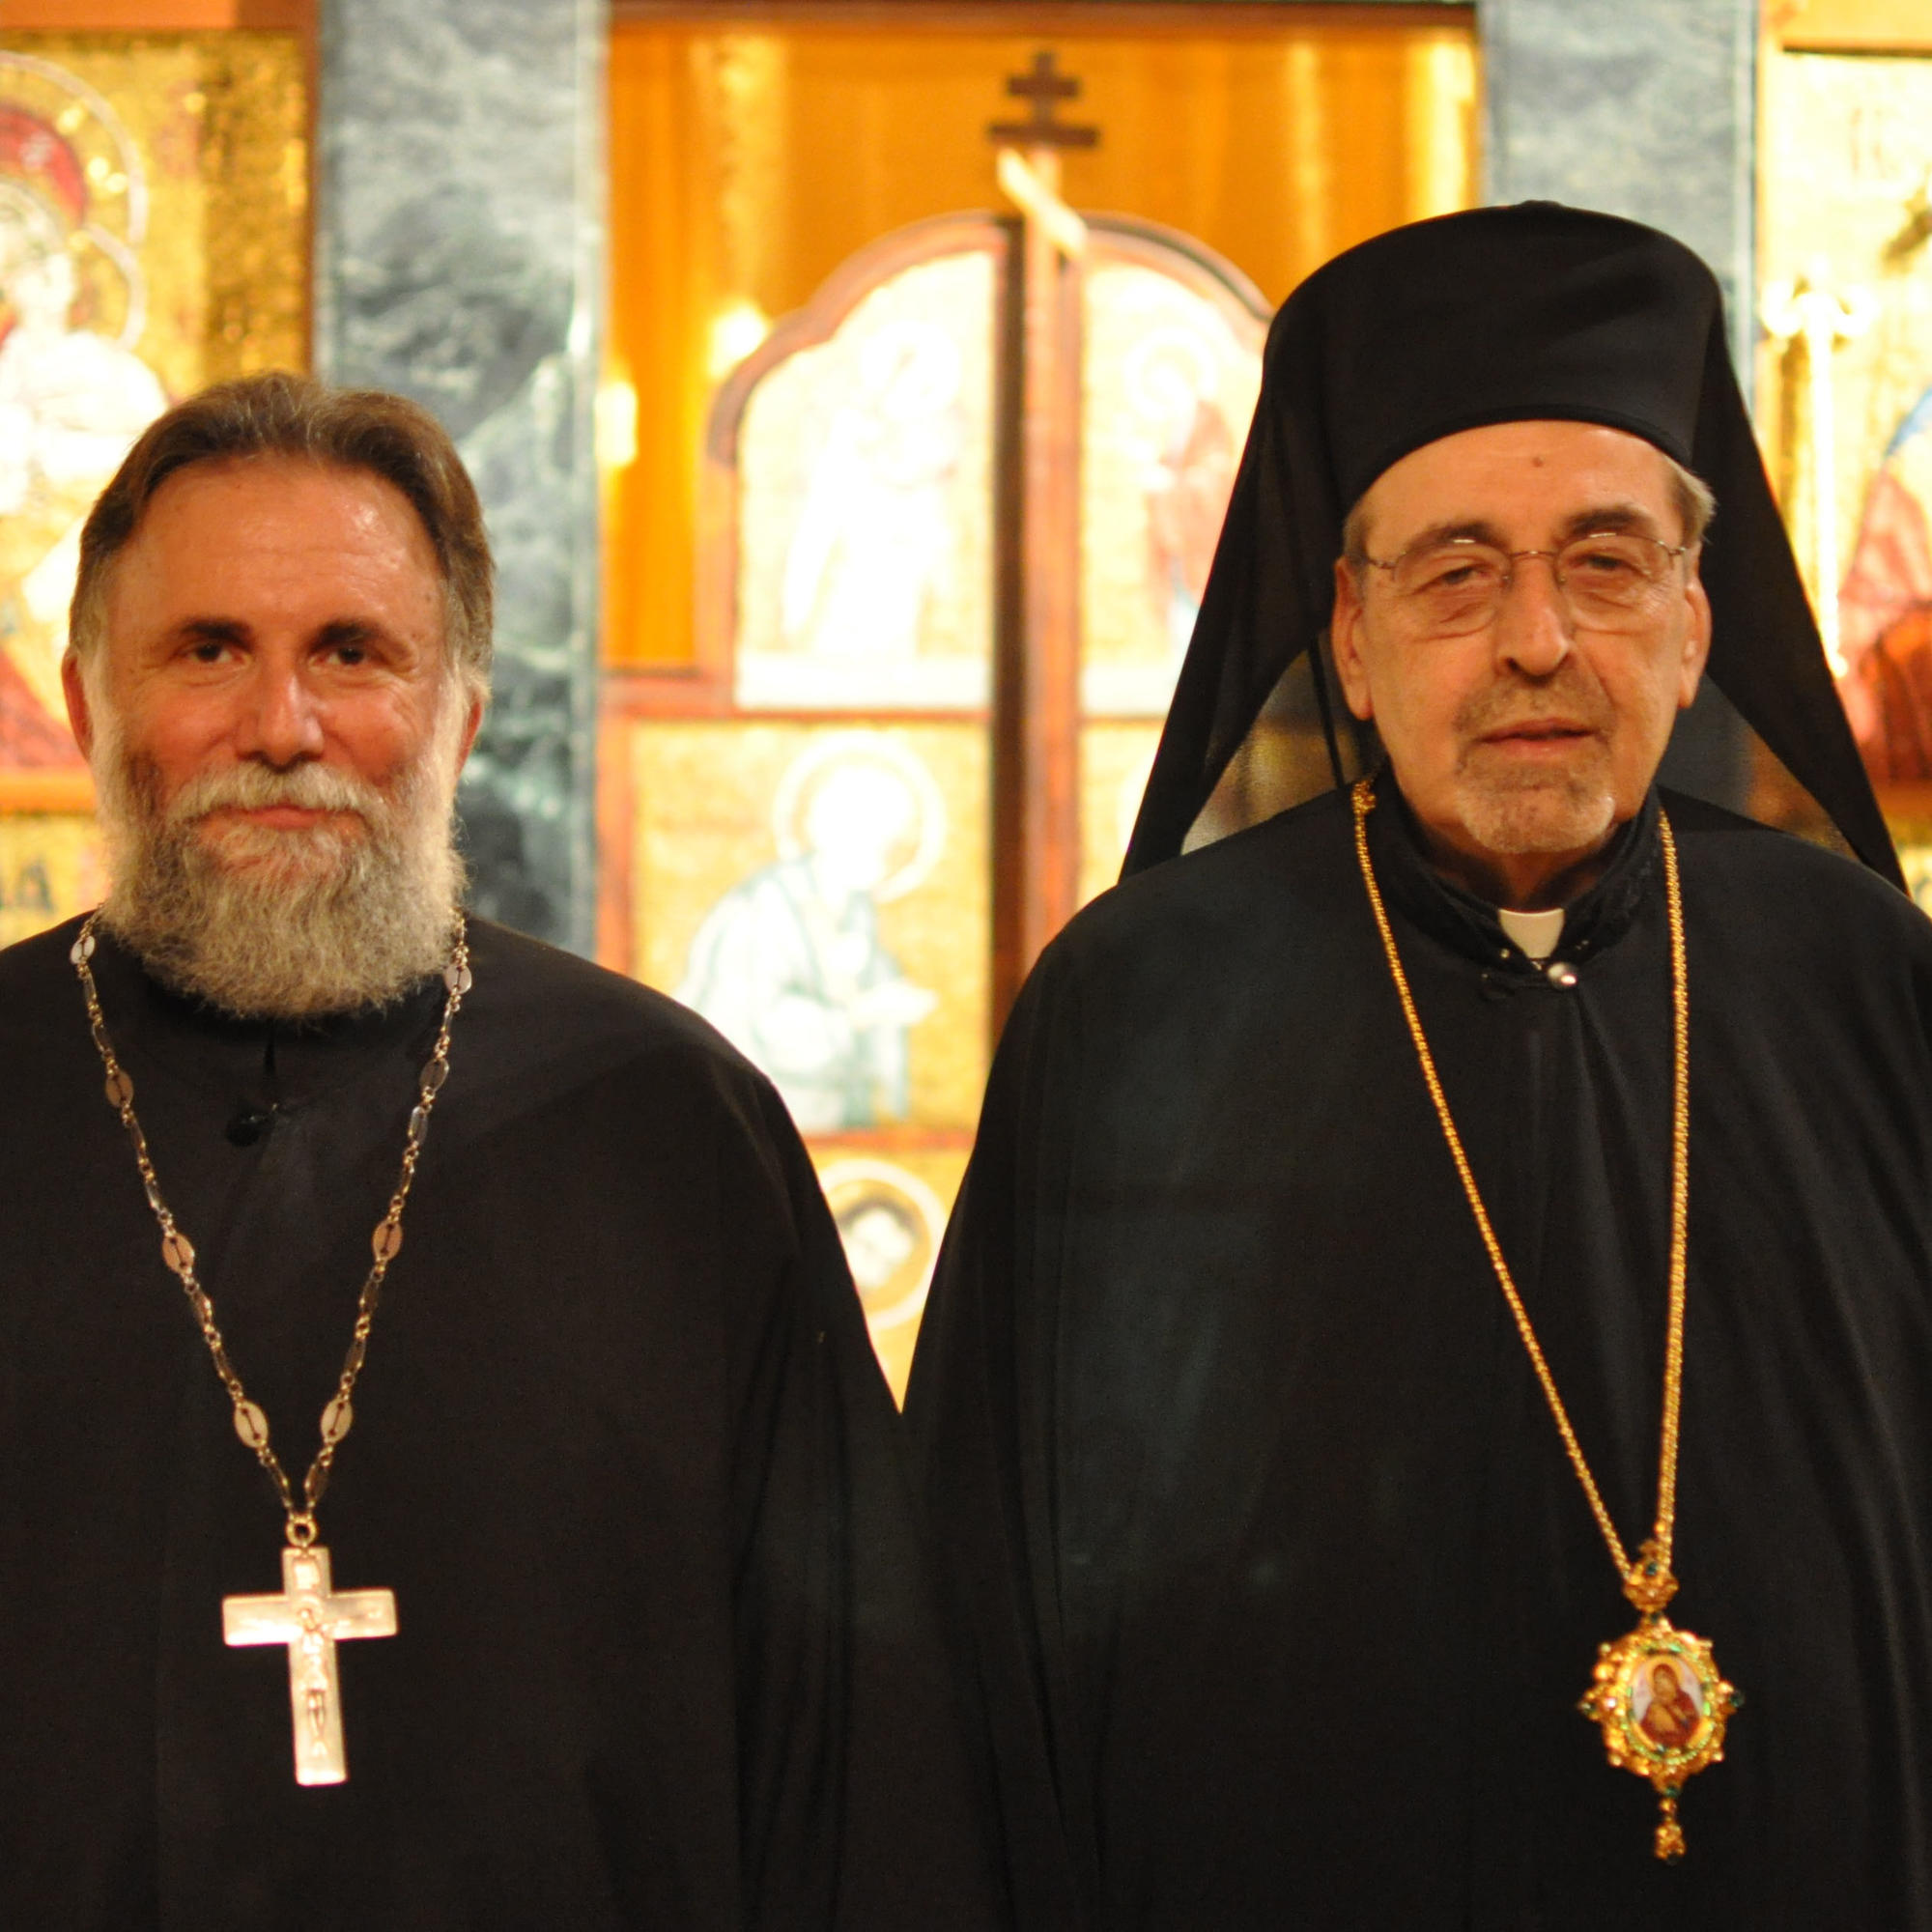 The Growth of Eastern Orthodoxy